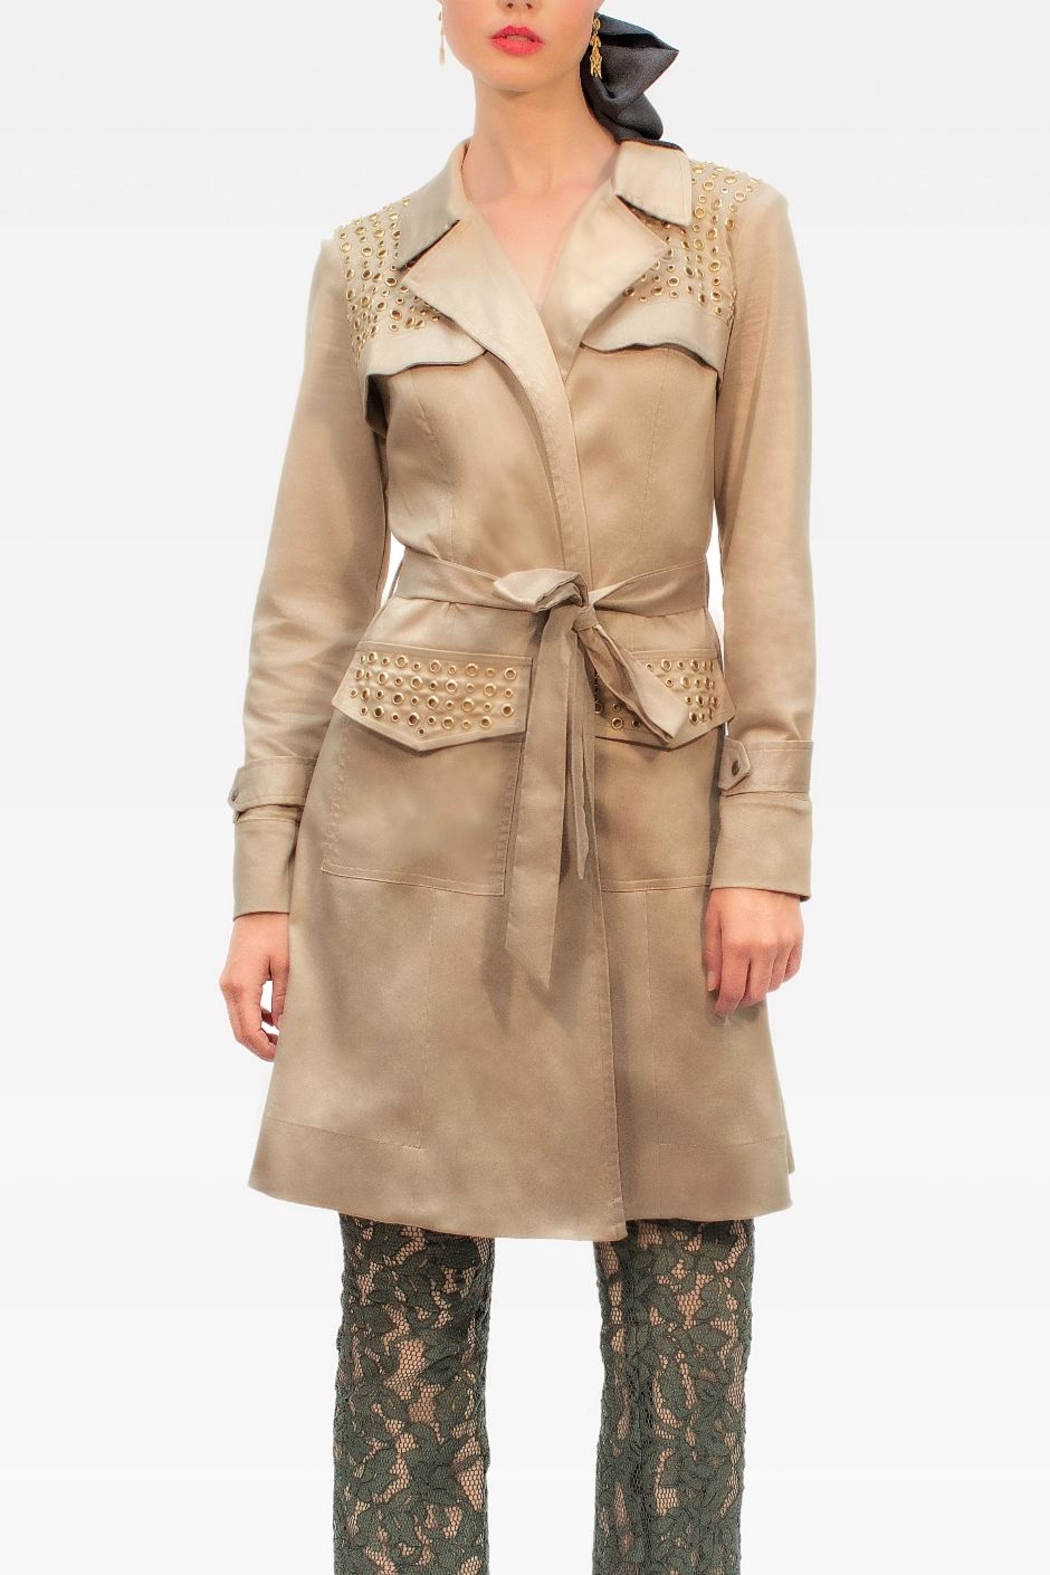 f0c944ae5fc Viesca y Viesca Studded Trnch Coat from Mexico — Shoptiques